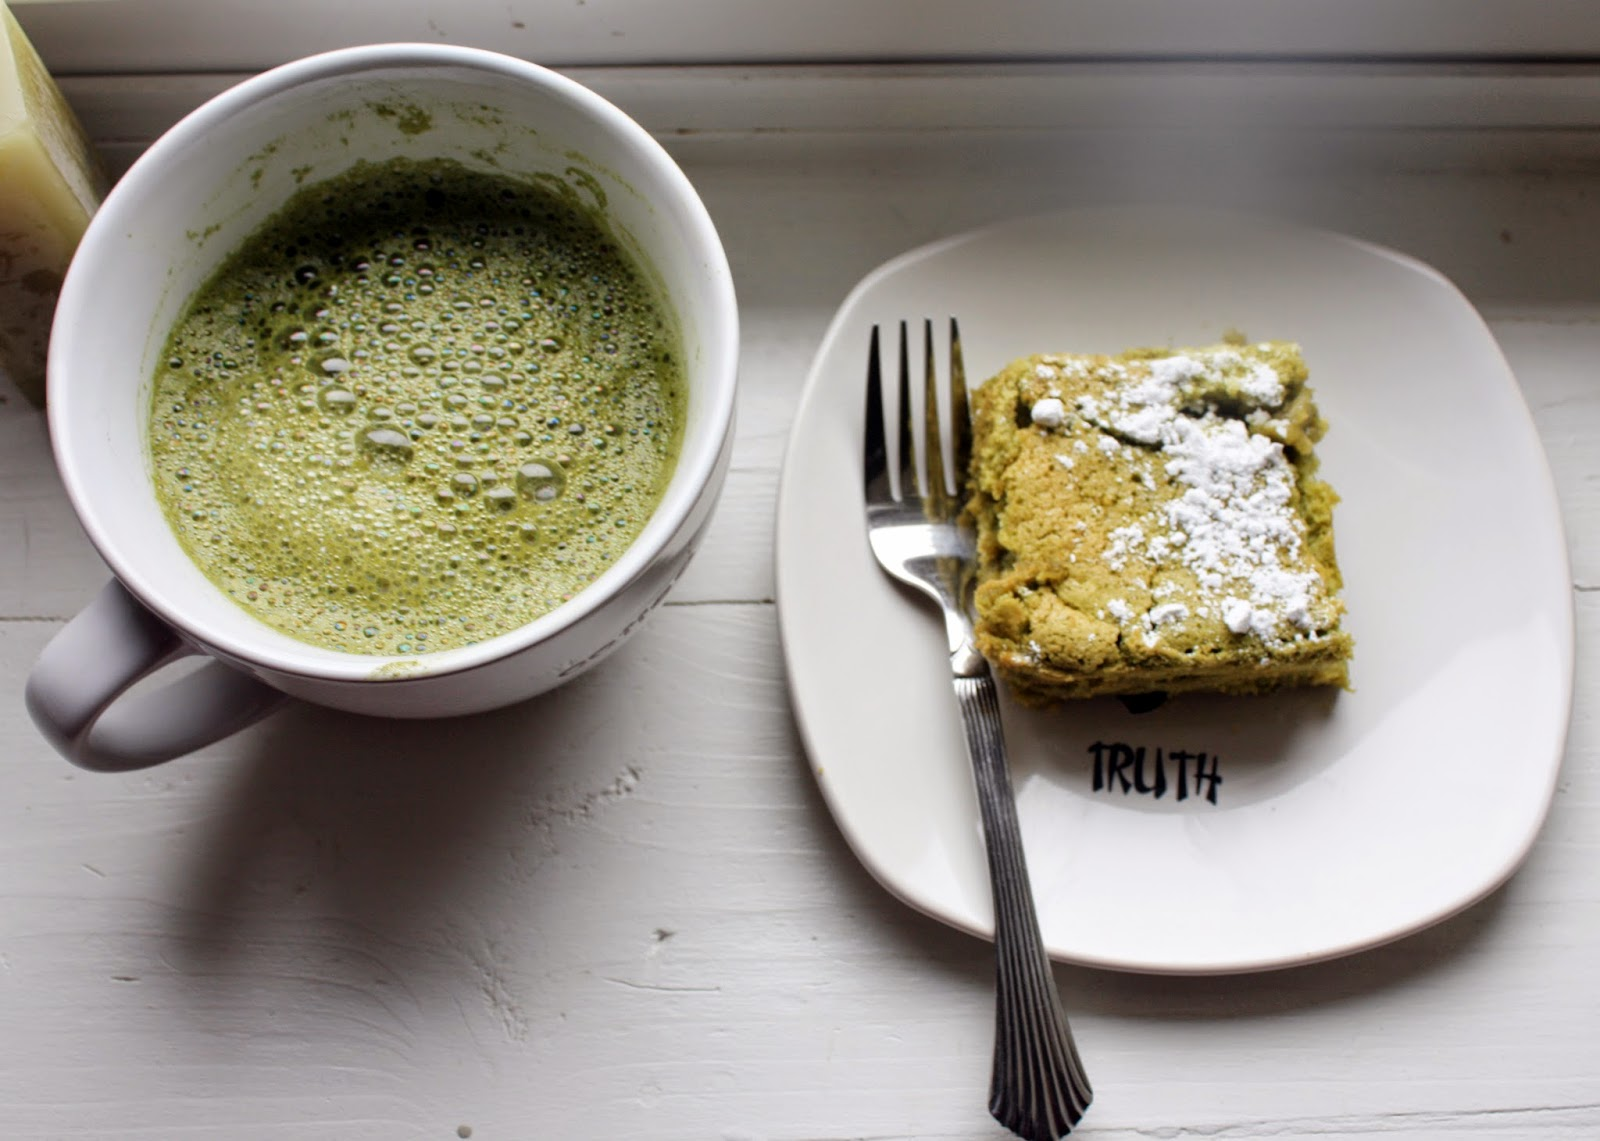 Green tea latte and Green tea cake